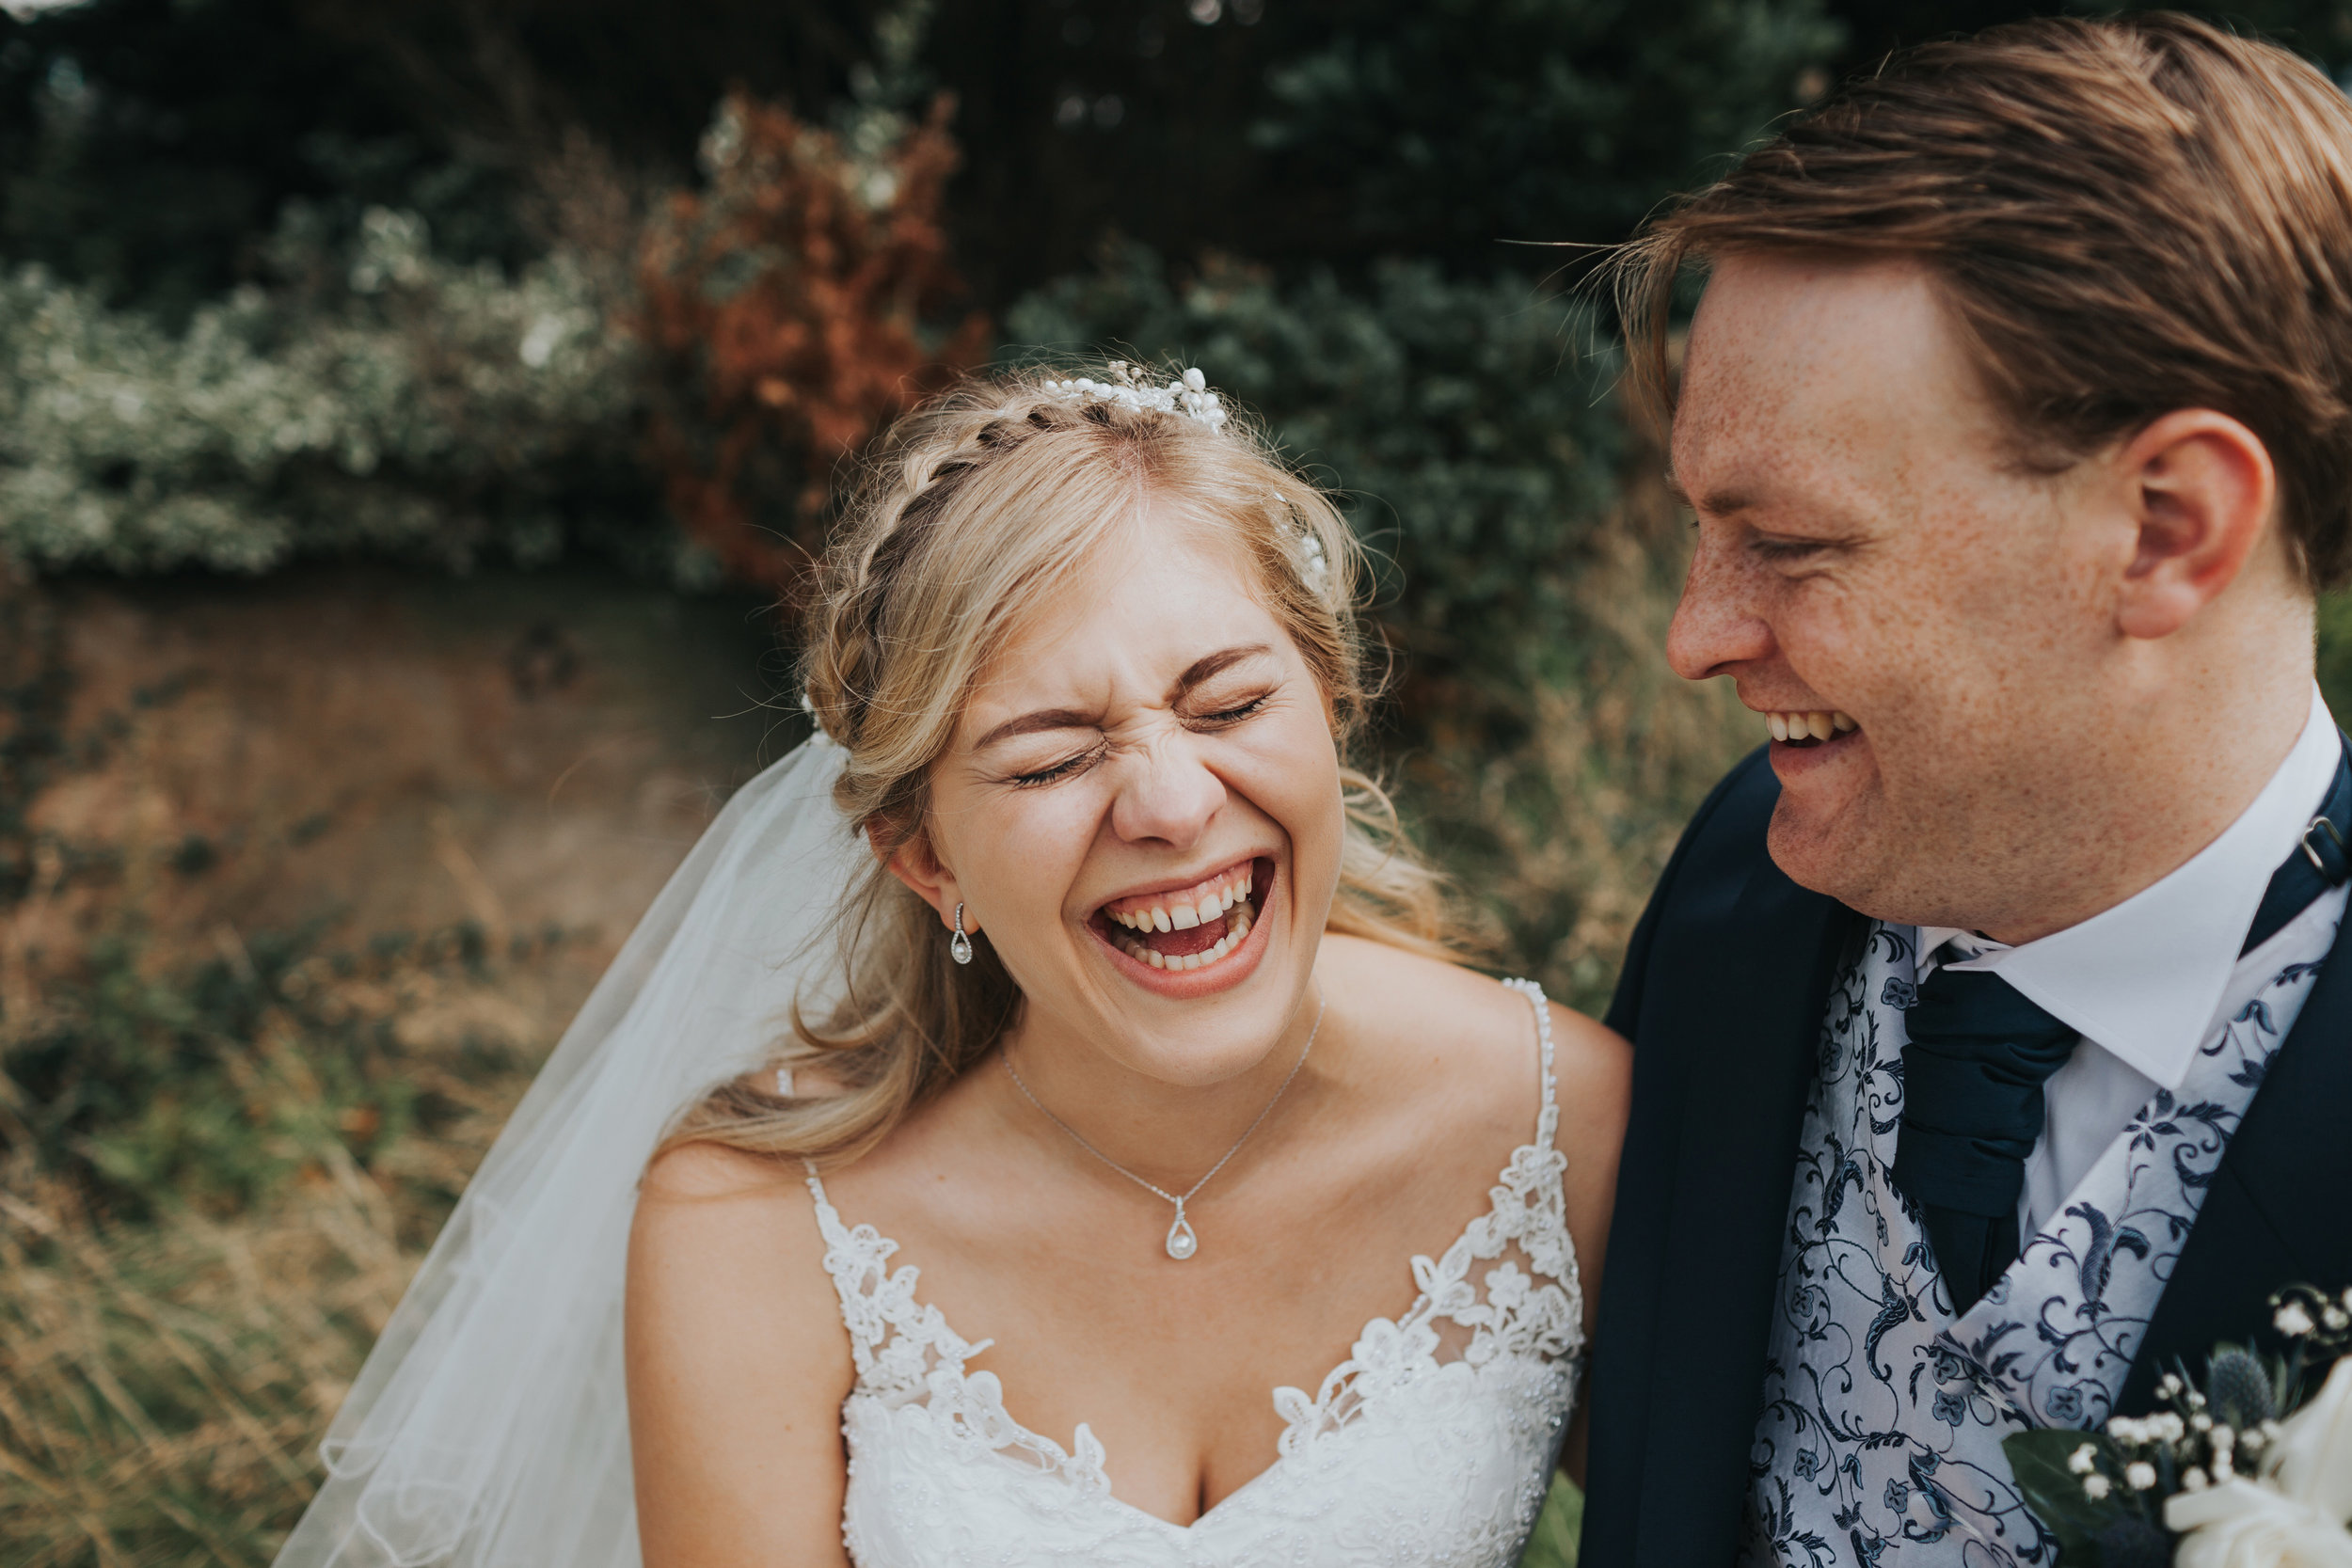 Bride cracks up laughing at Groom.